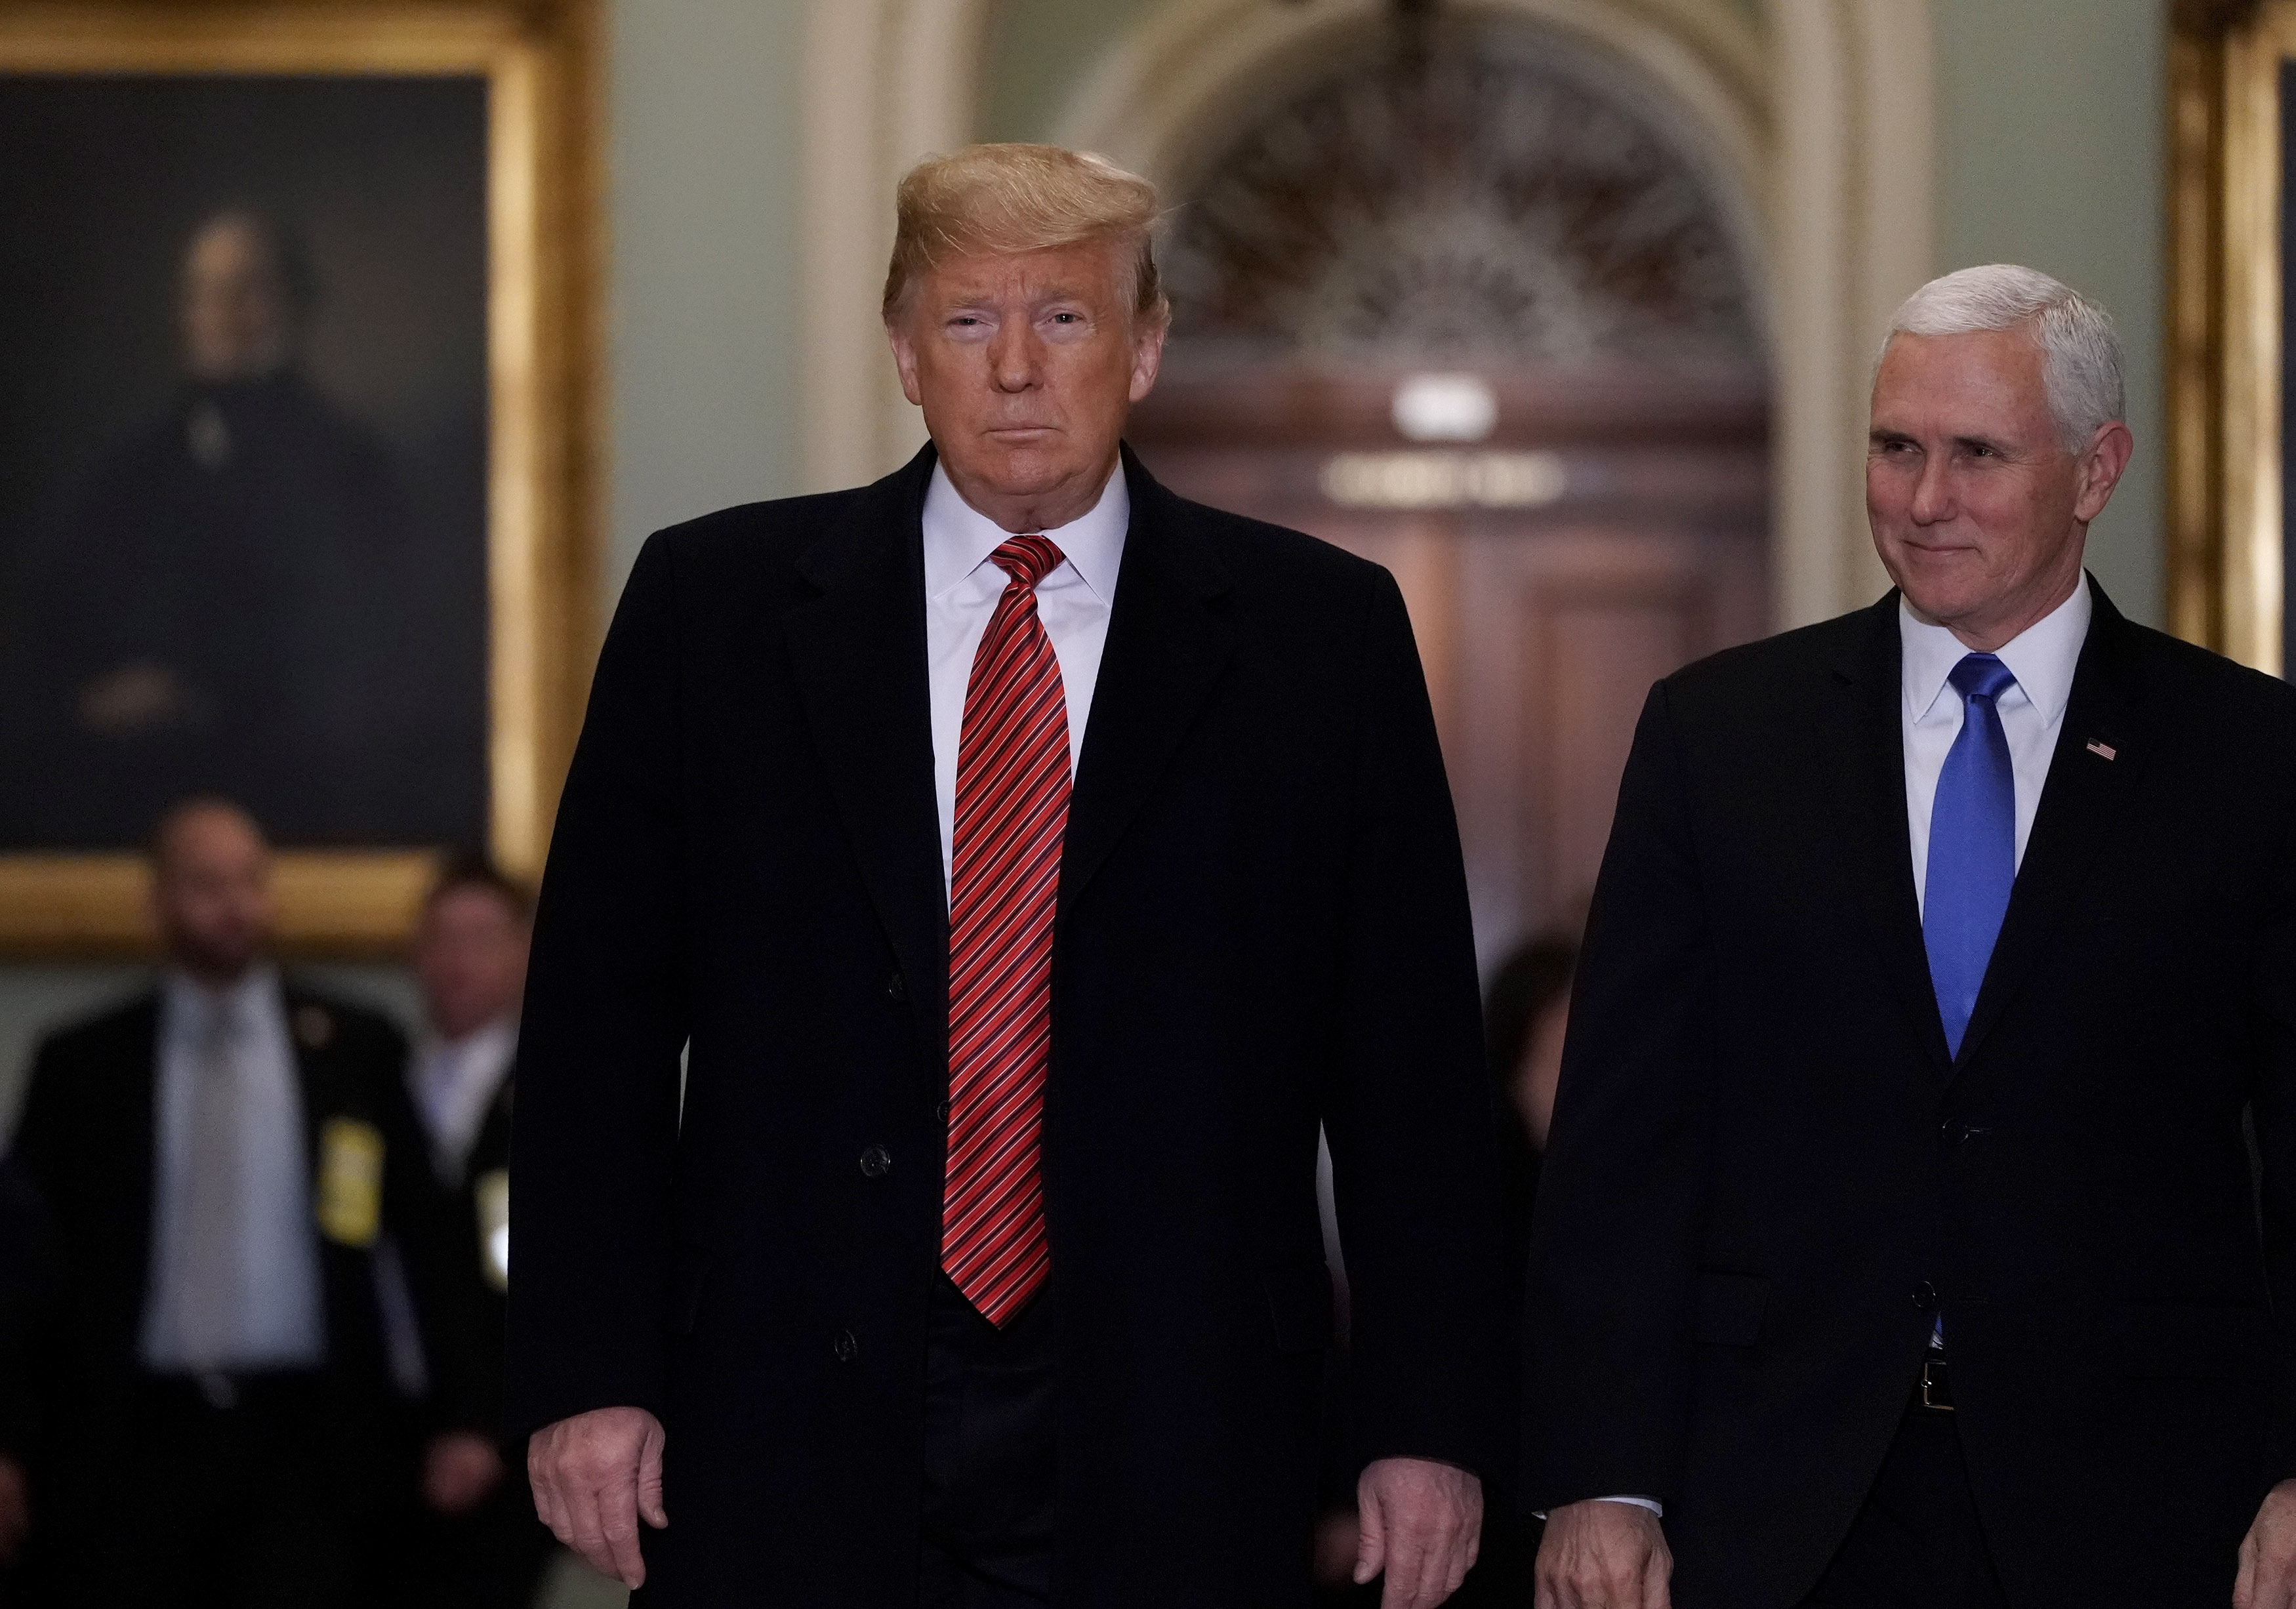 President Donald Trump and Vice President Mike Pence arrive at the U.S. Capitol to attend the weekly Republican Senate policy luncheon Jan. 9, 2019 in Washington, D.C.